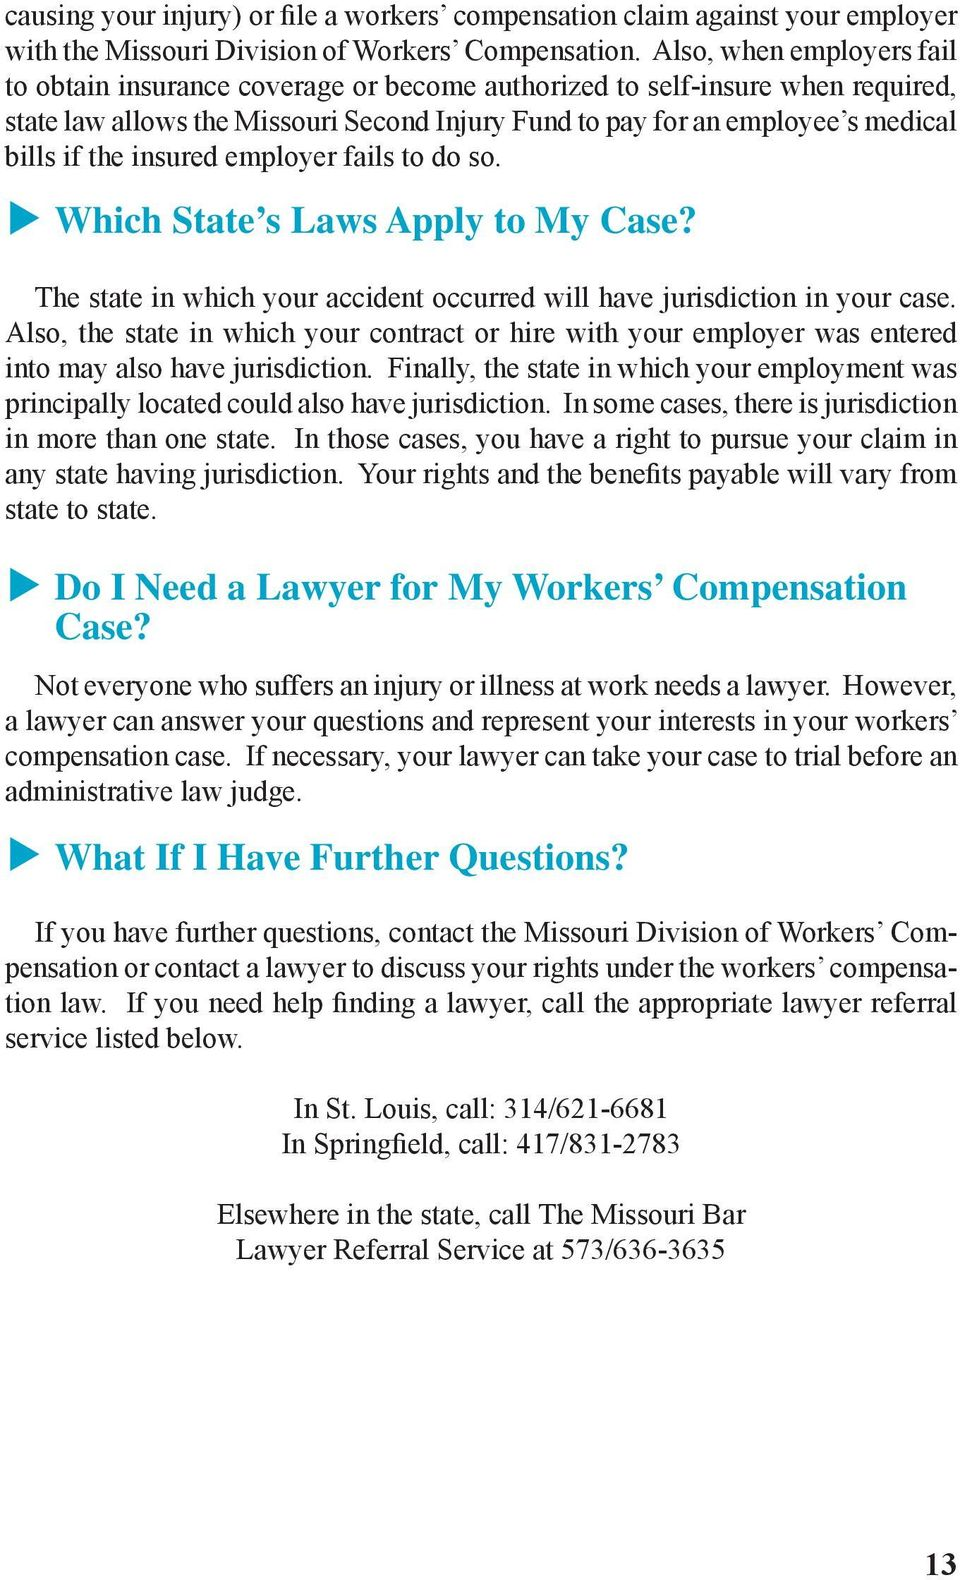 the insured employer fails to do so. The state in which your accident occurred will have jurisdiction in your case.